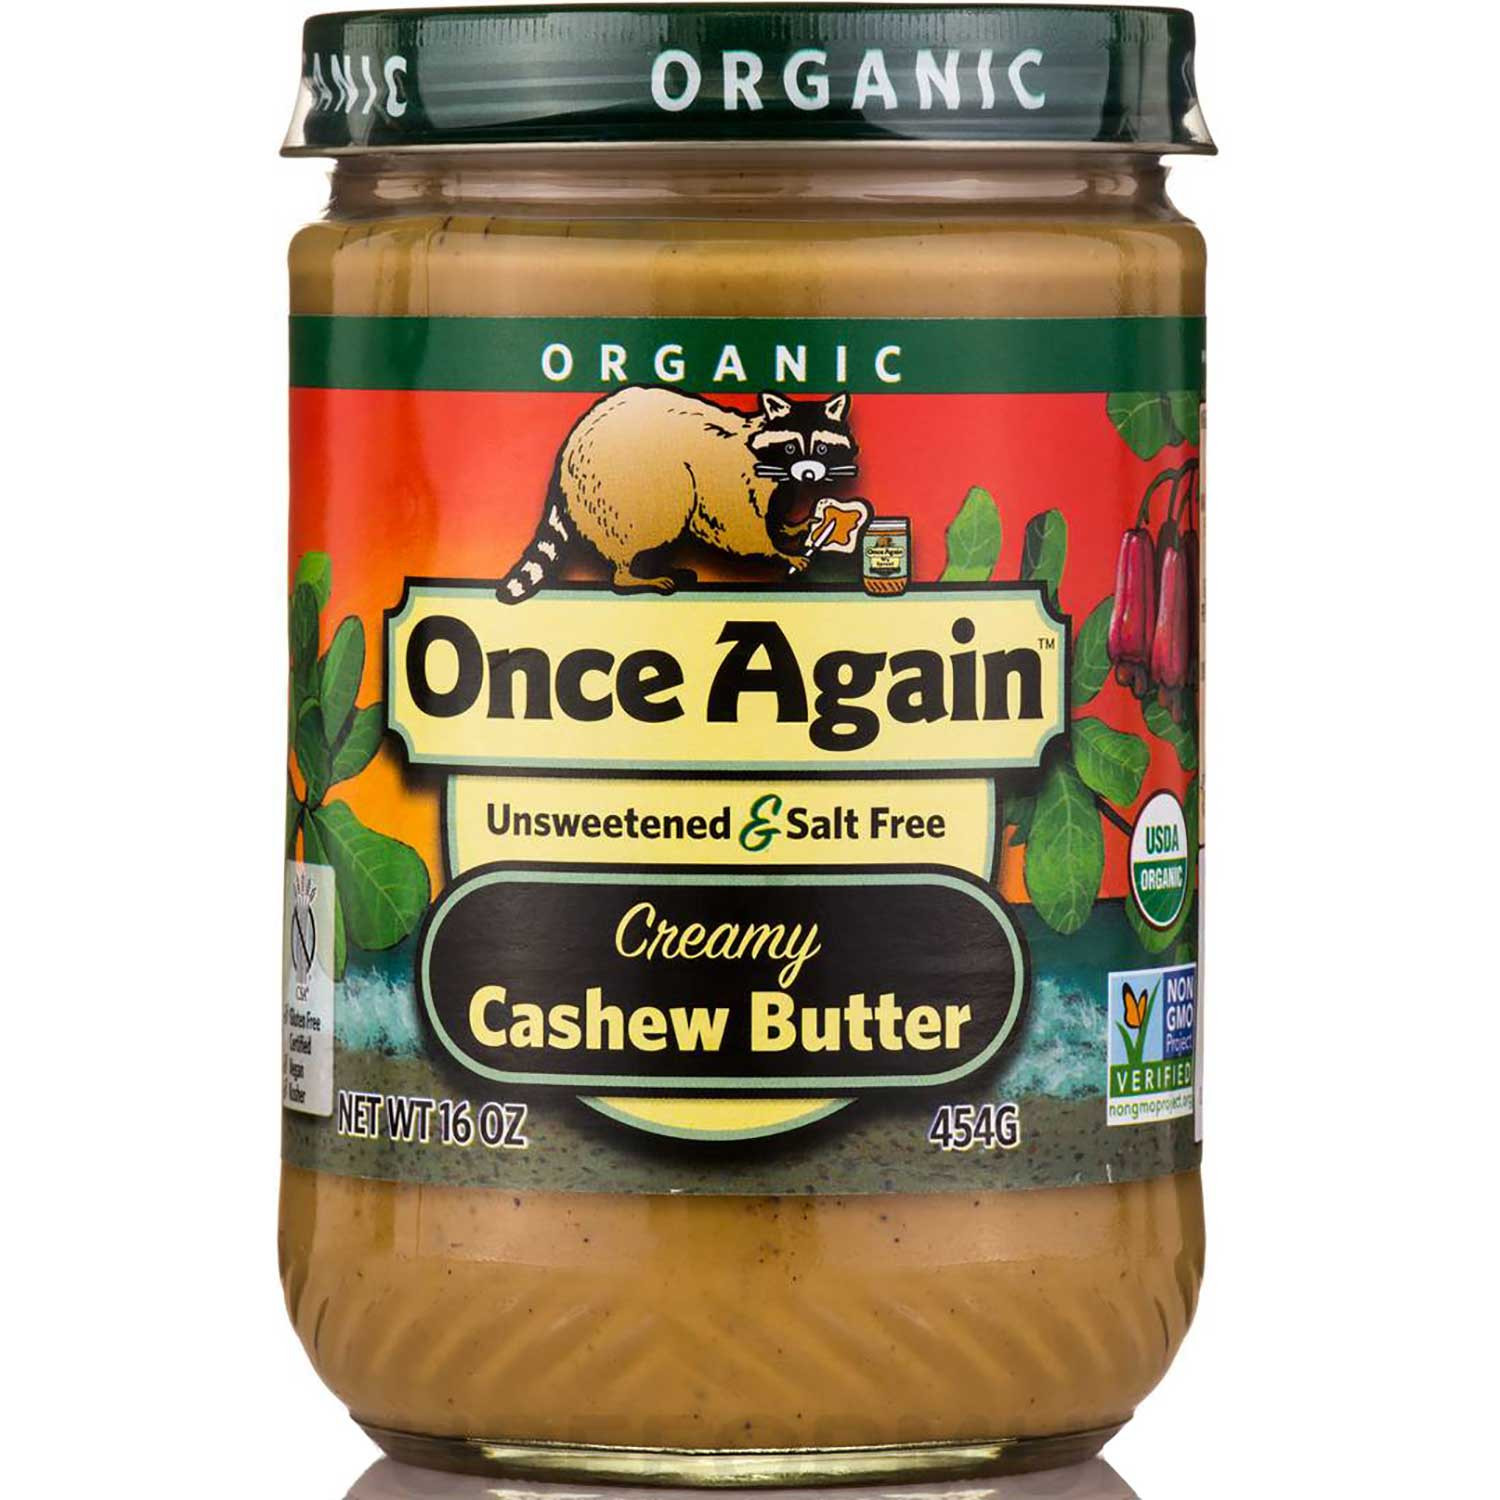 Once Again Nut Butter Organic Cashew Butter - Unsweetened & Salt Free, 454 g